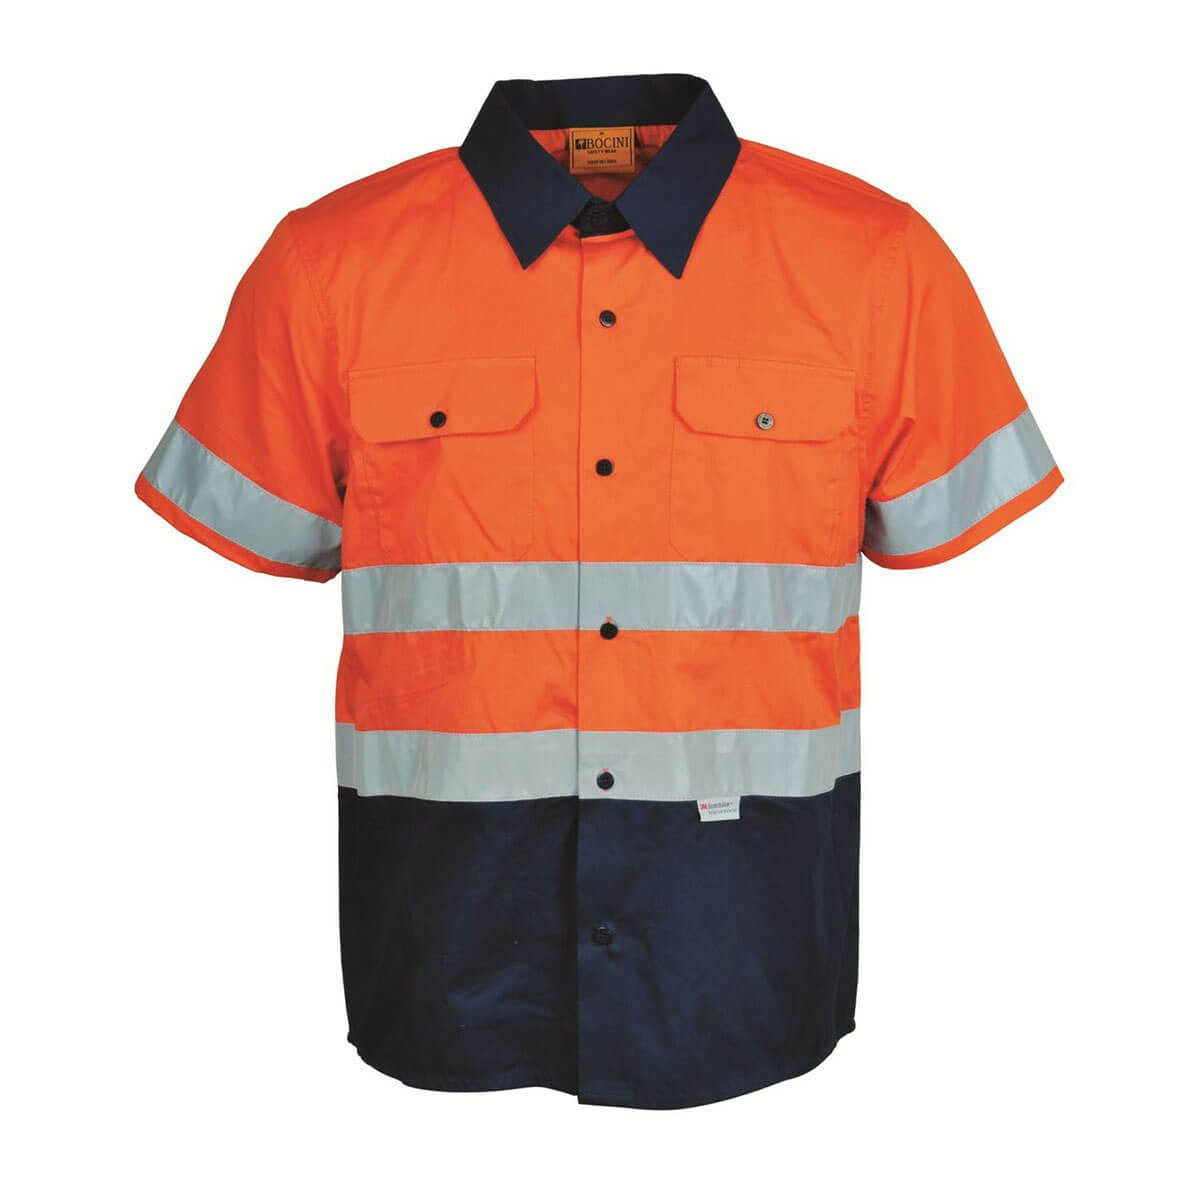 HI-VIS S/S COTTON DRILL SHIRT WITH TAPE